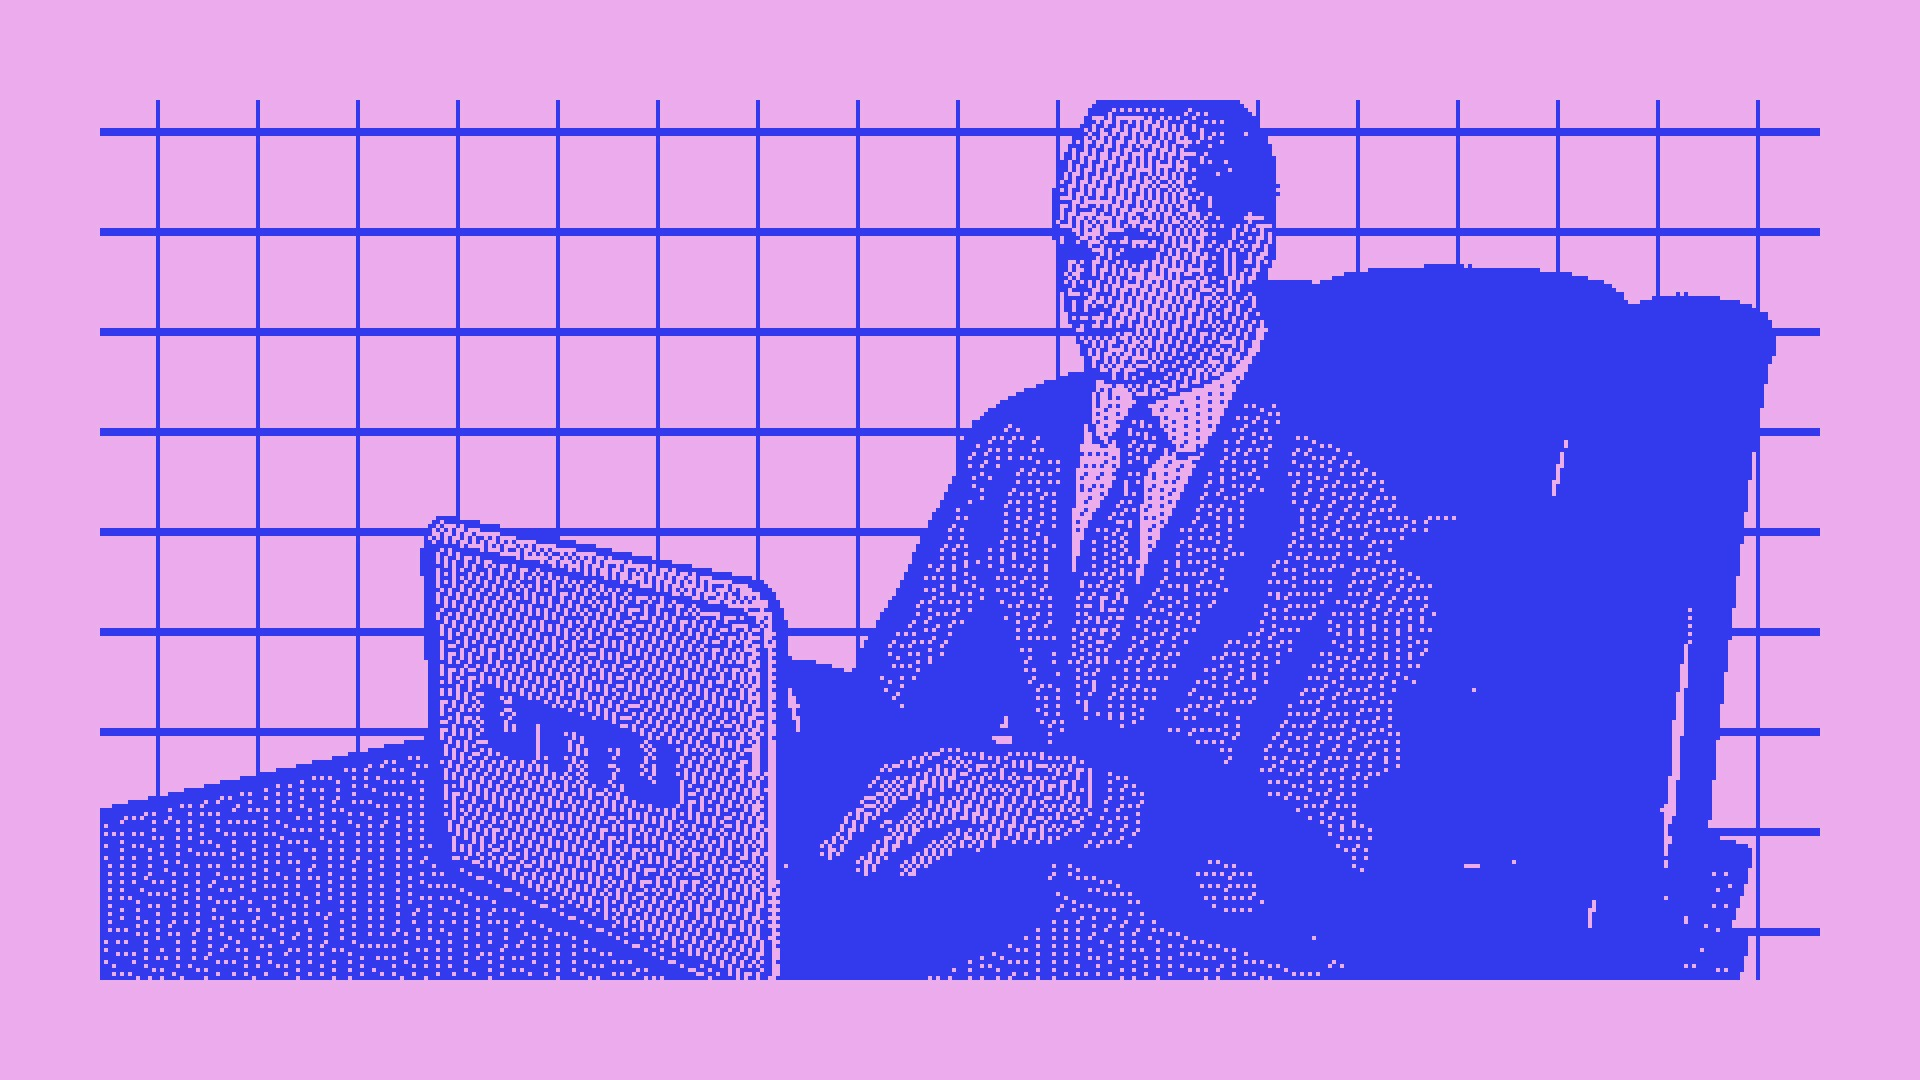 Relieve the Glory Days of Home Computing in this Retro Video for UTTU Signed REALITYCHECK's New Single